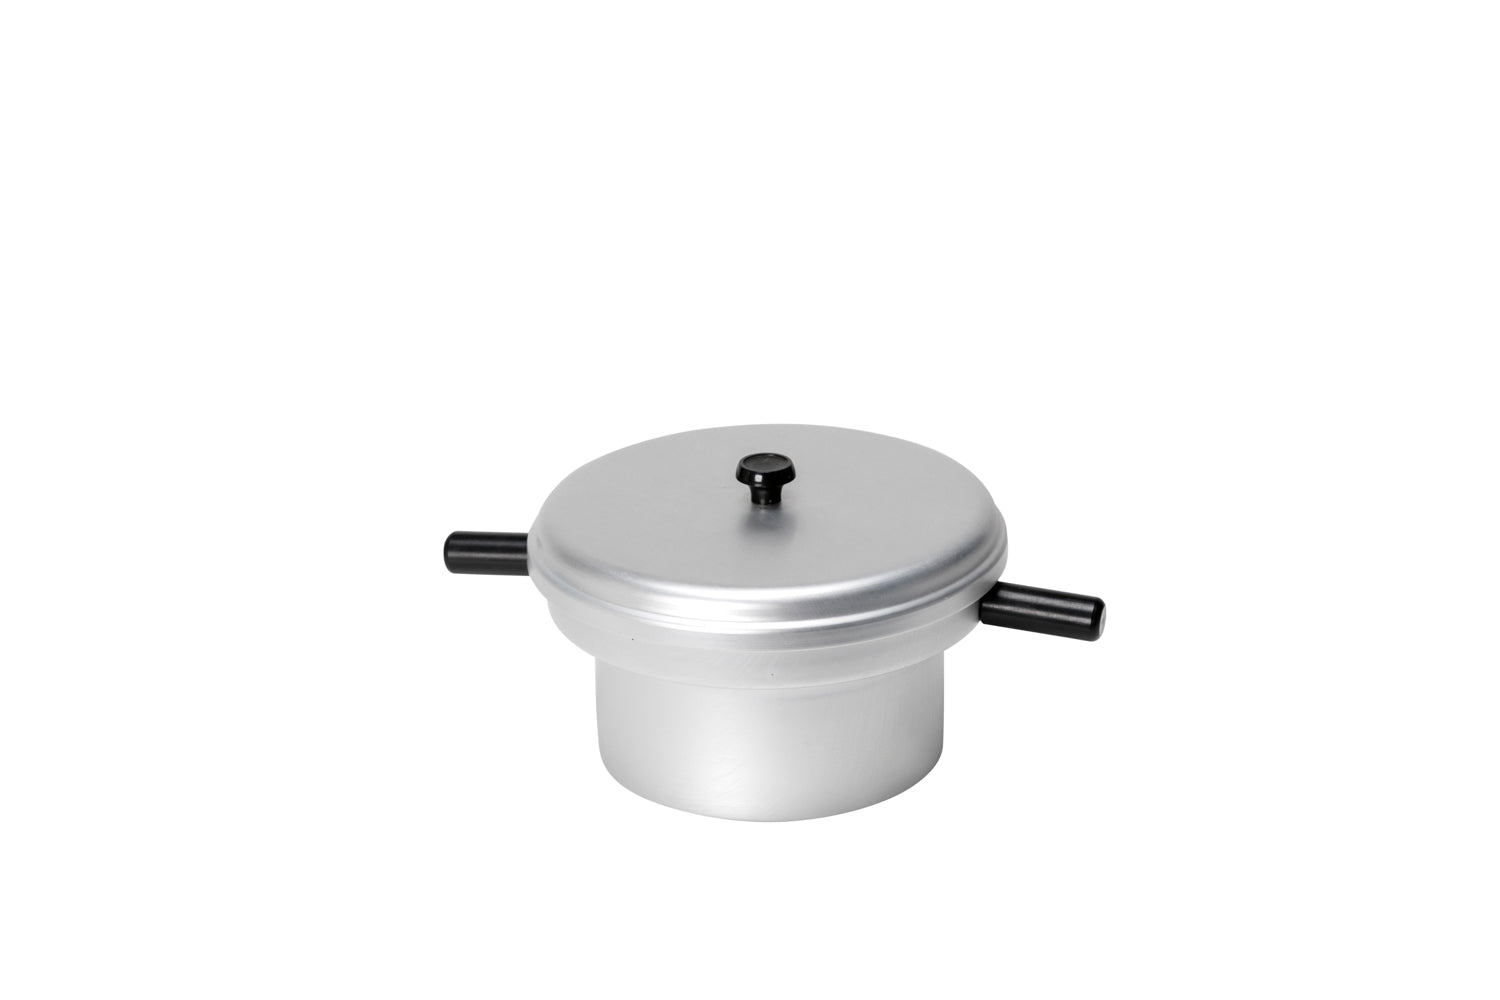 Wax Warmer Insert | 6in diameter tank